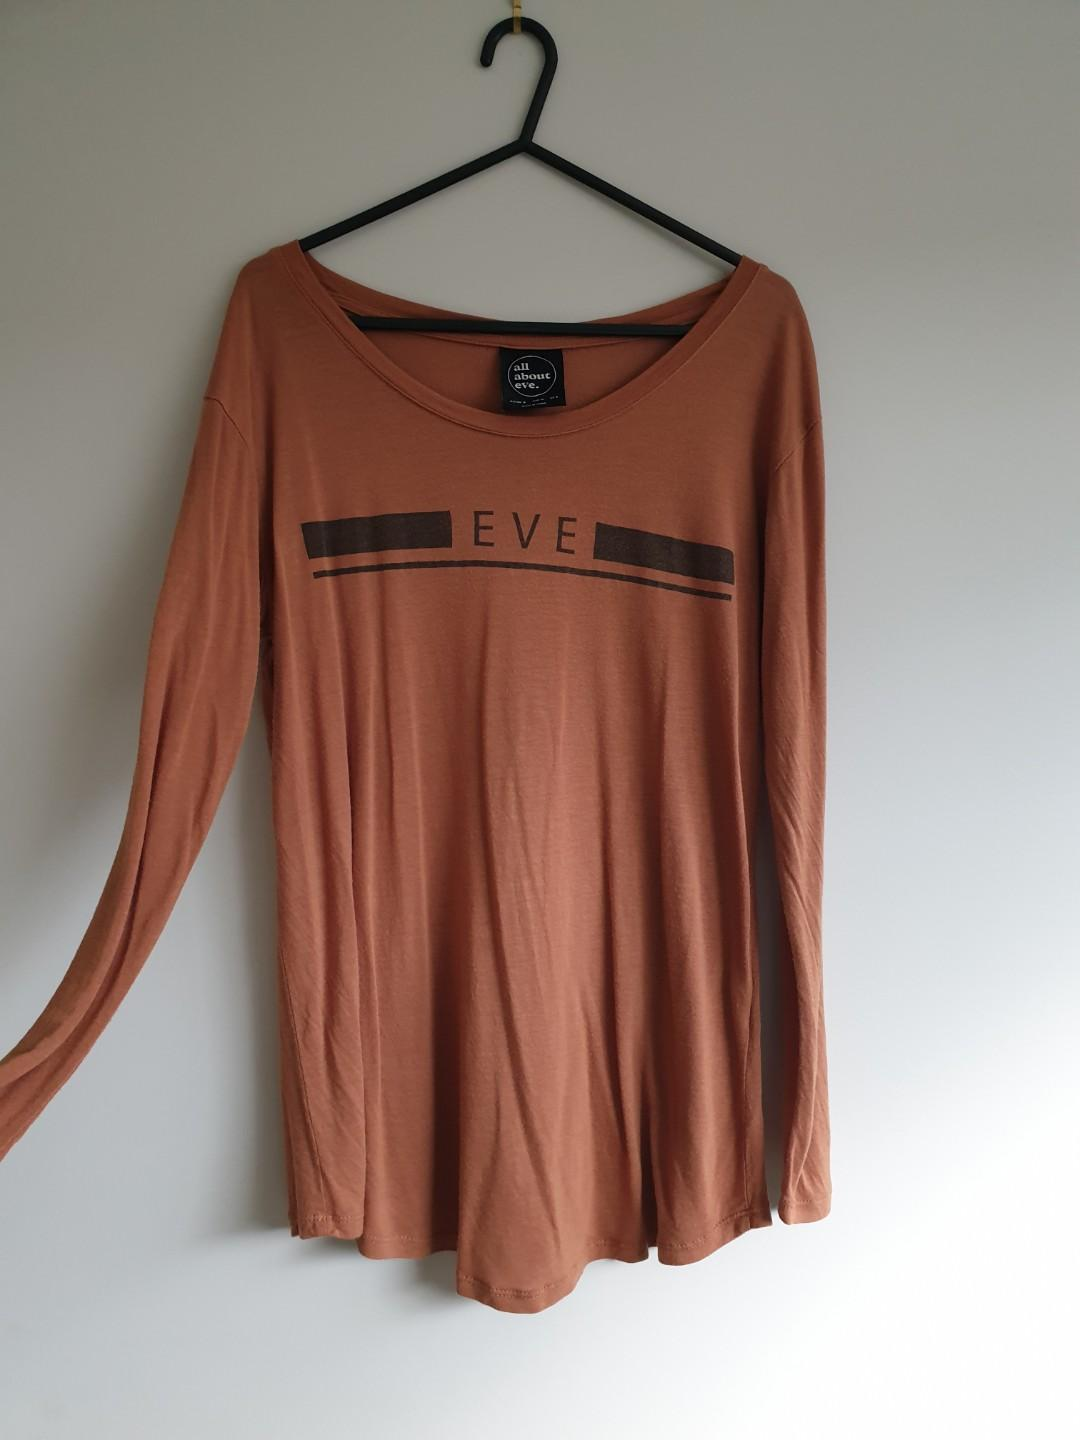 All About Eve long sleeve tee